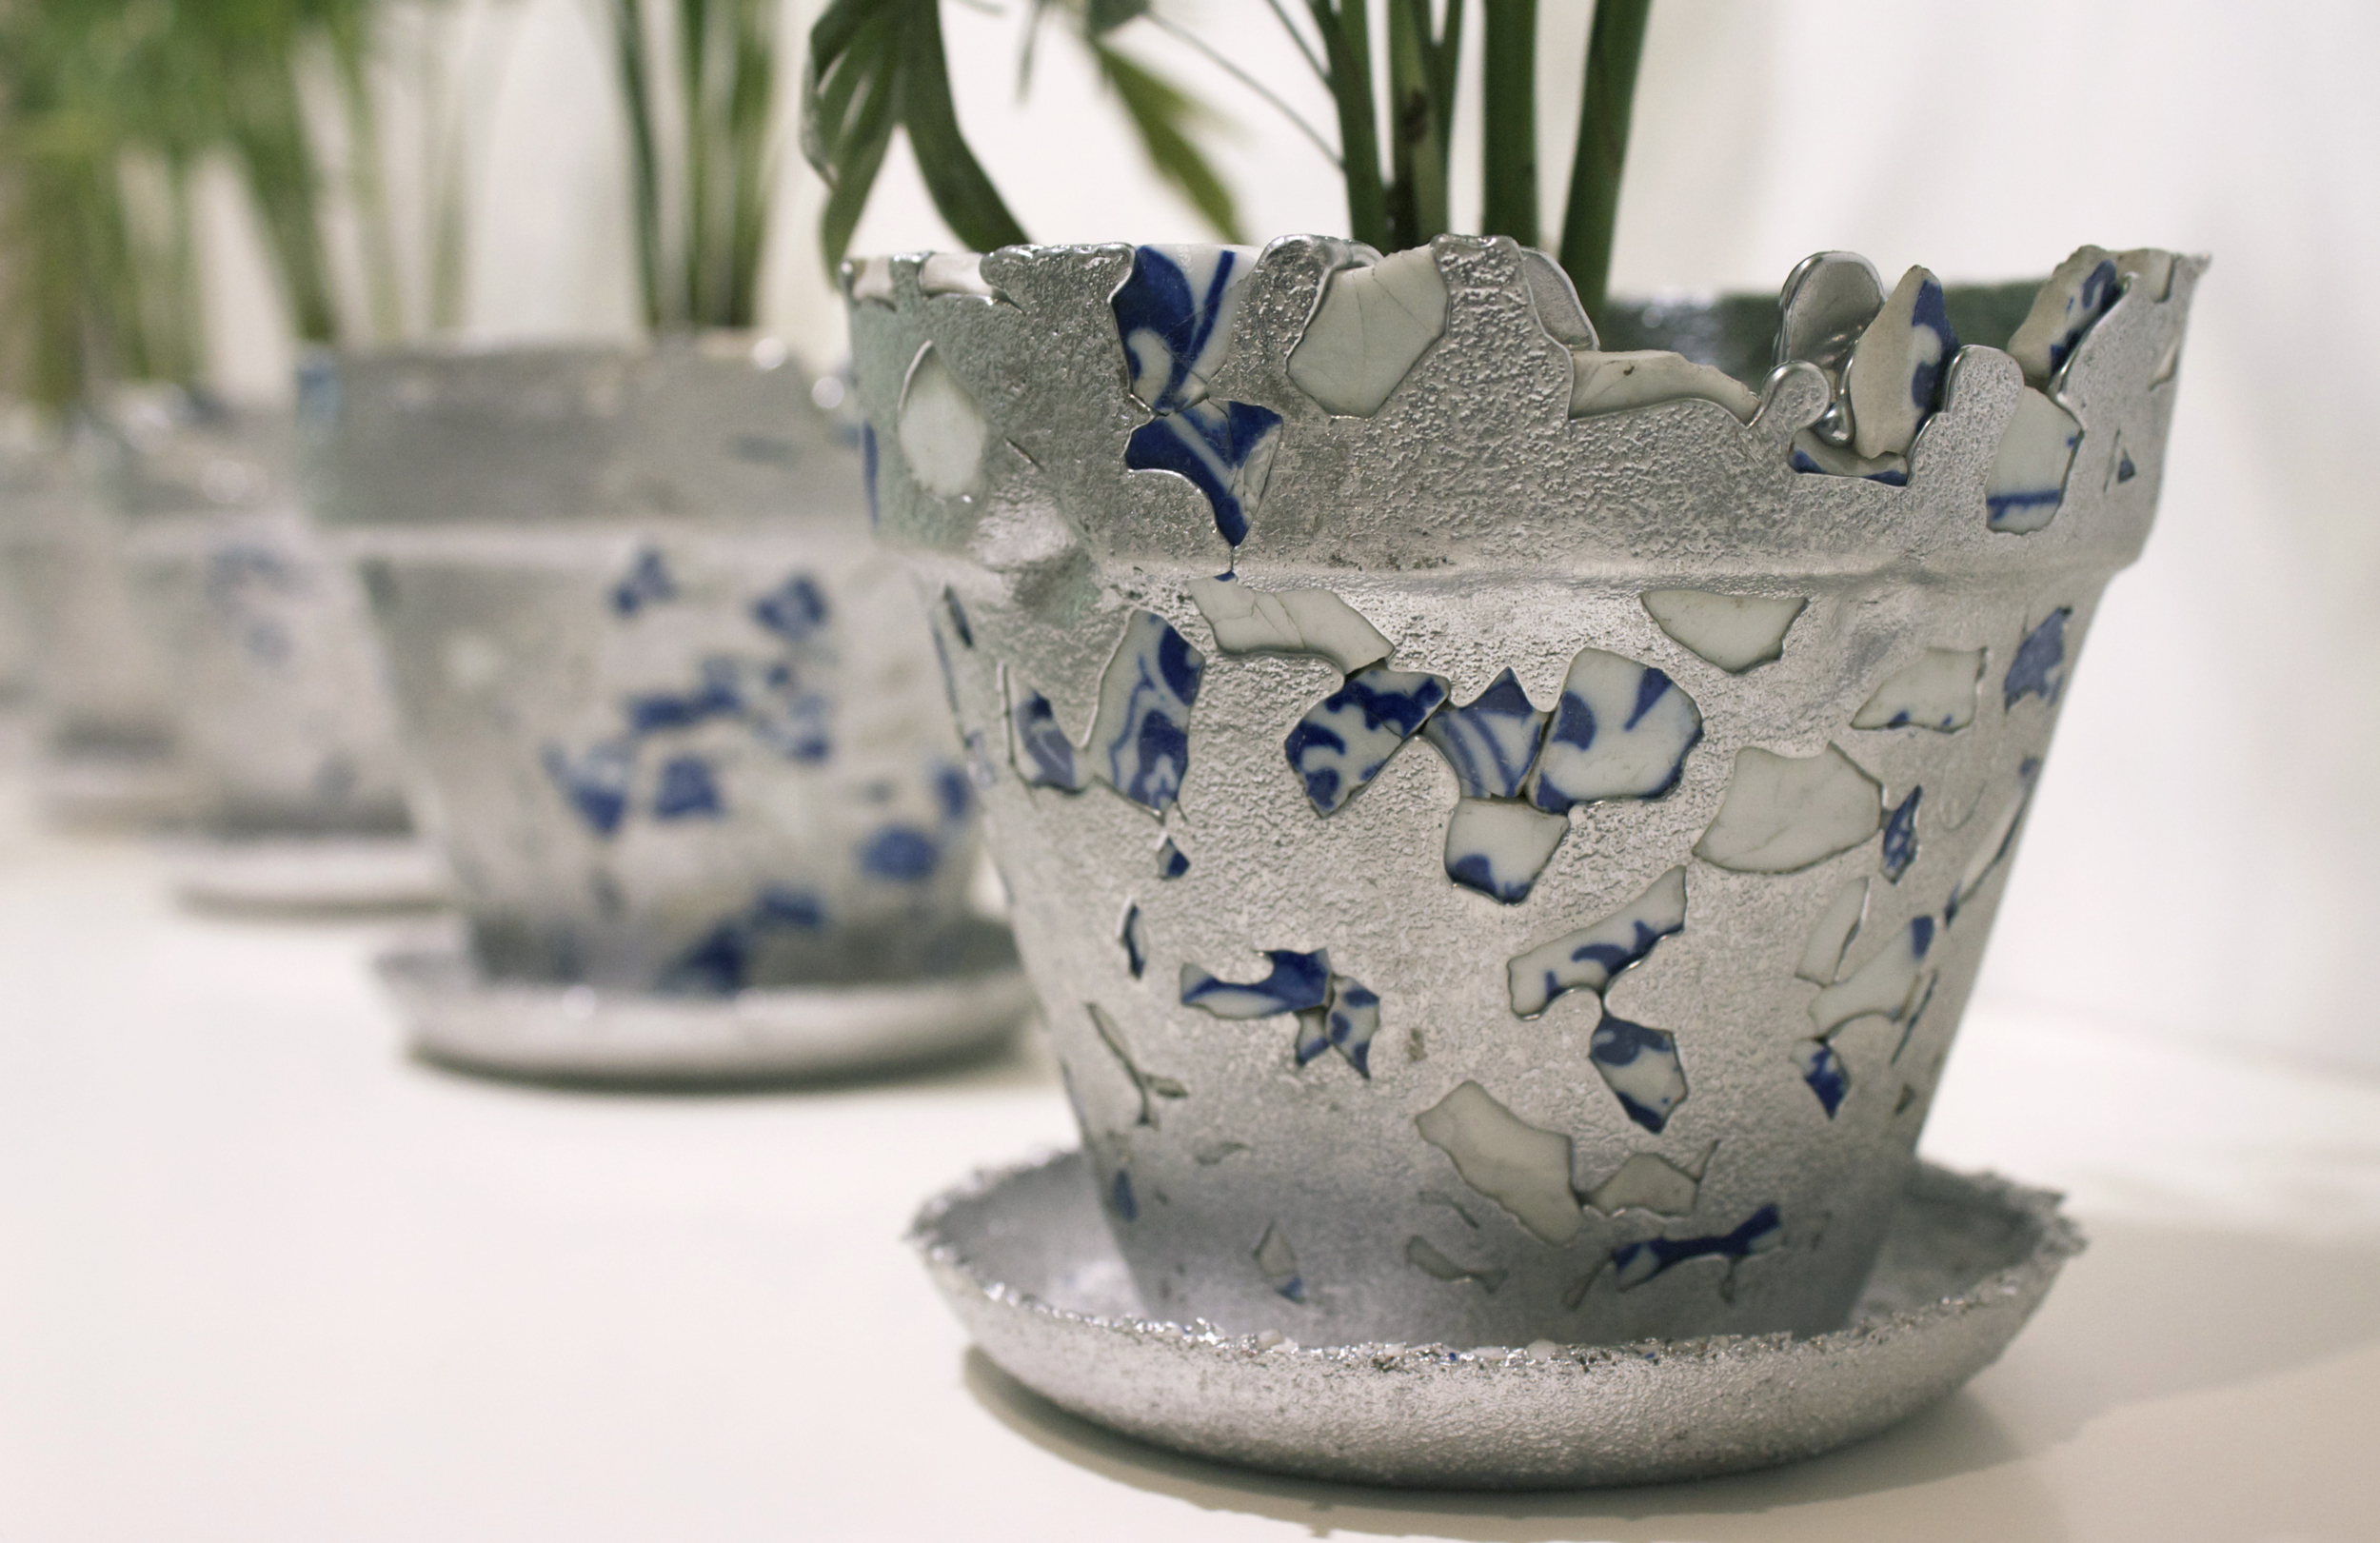 Recycled Aluminum, Factory Discarded Porcelain